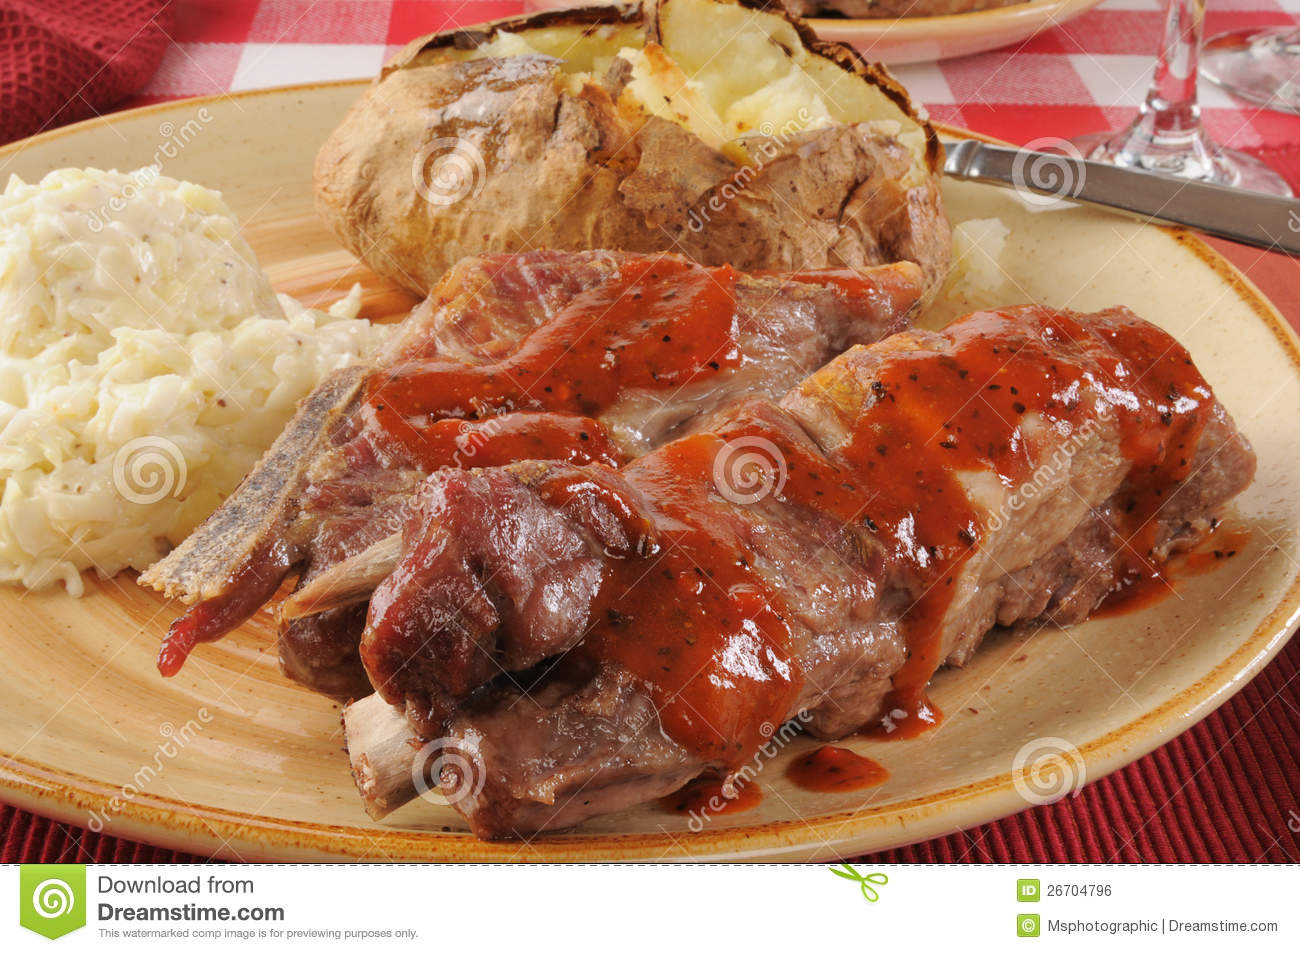 Closeup of barbecued pork ribs with a baked potato and coleslaw.